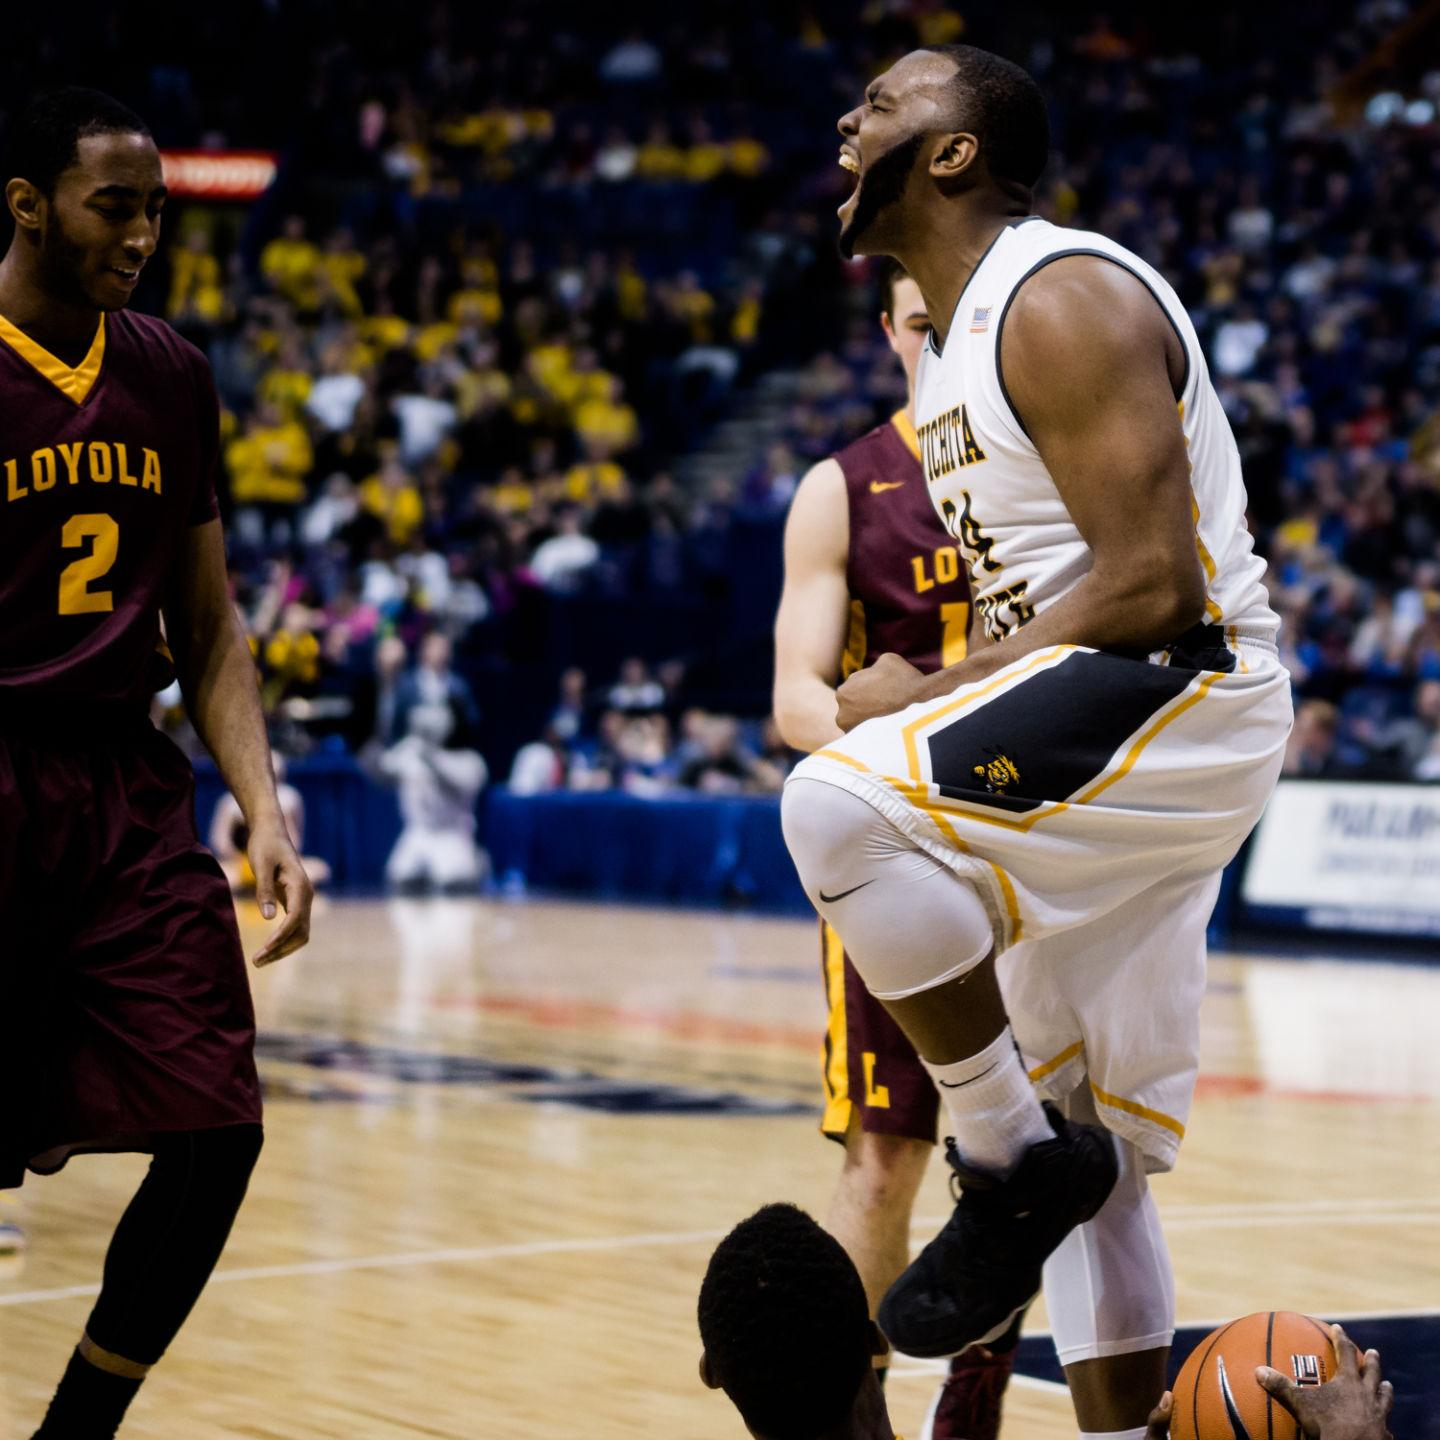 Sophomore forward Shaq Morris celebrates a block against Loyola in the quarterfinals of Arch Madness. Morris finished with six blocks as the Shockers defeated the Ramblers.